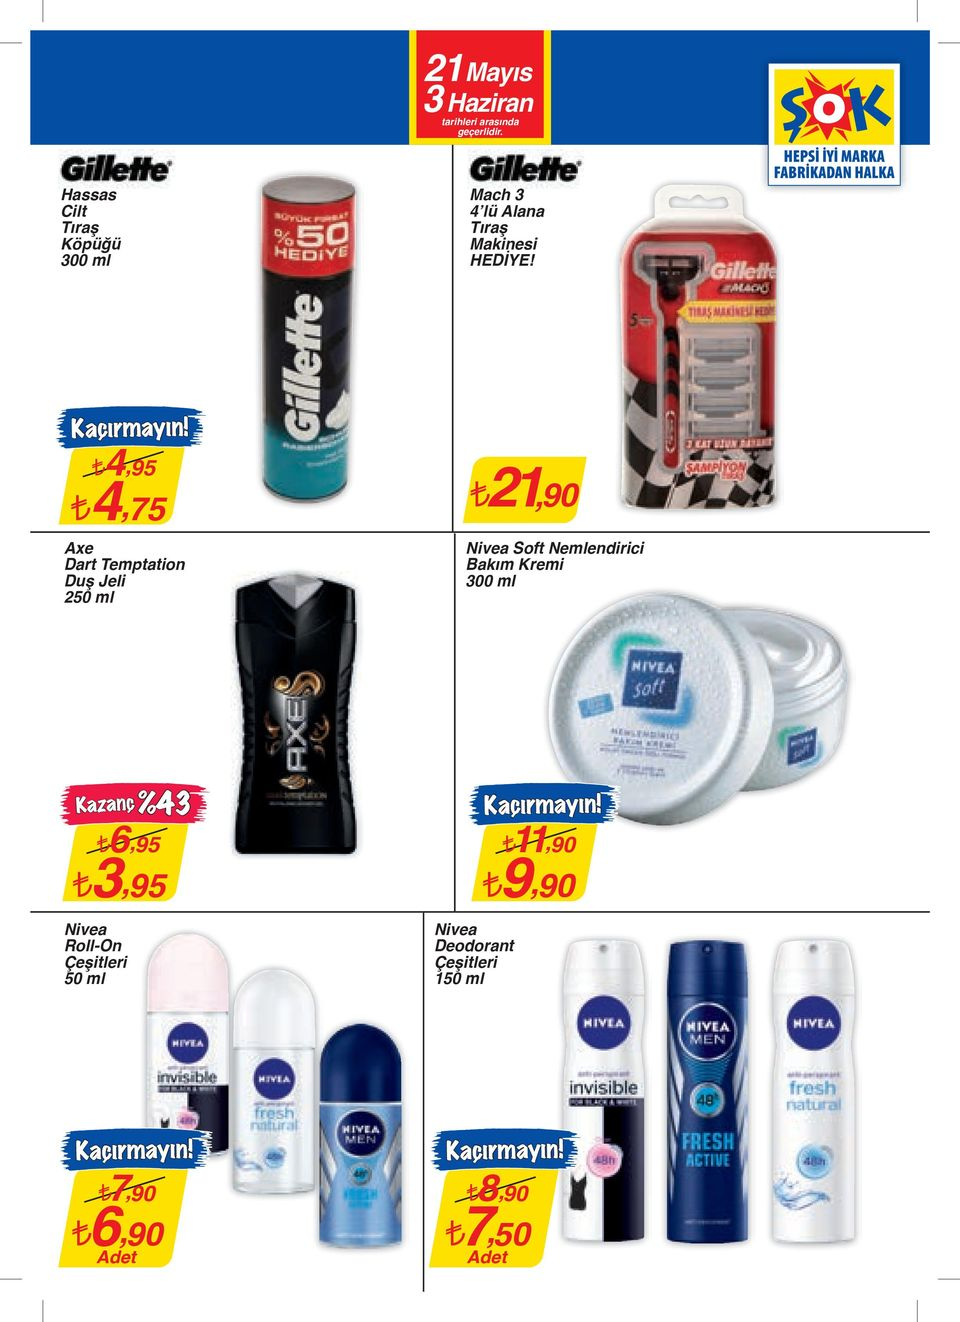 4,95 4,75 Axe Dart Temptation Duş Jeli 250 ml 21,90 Nivea Soft